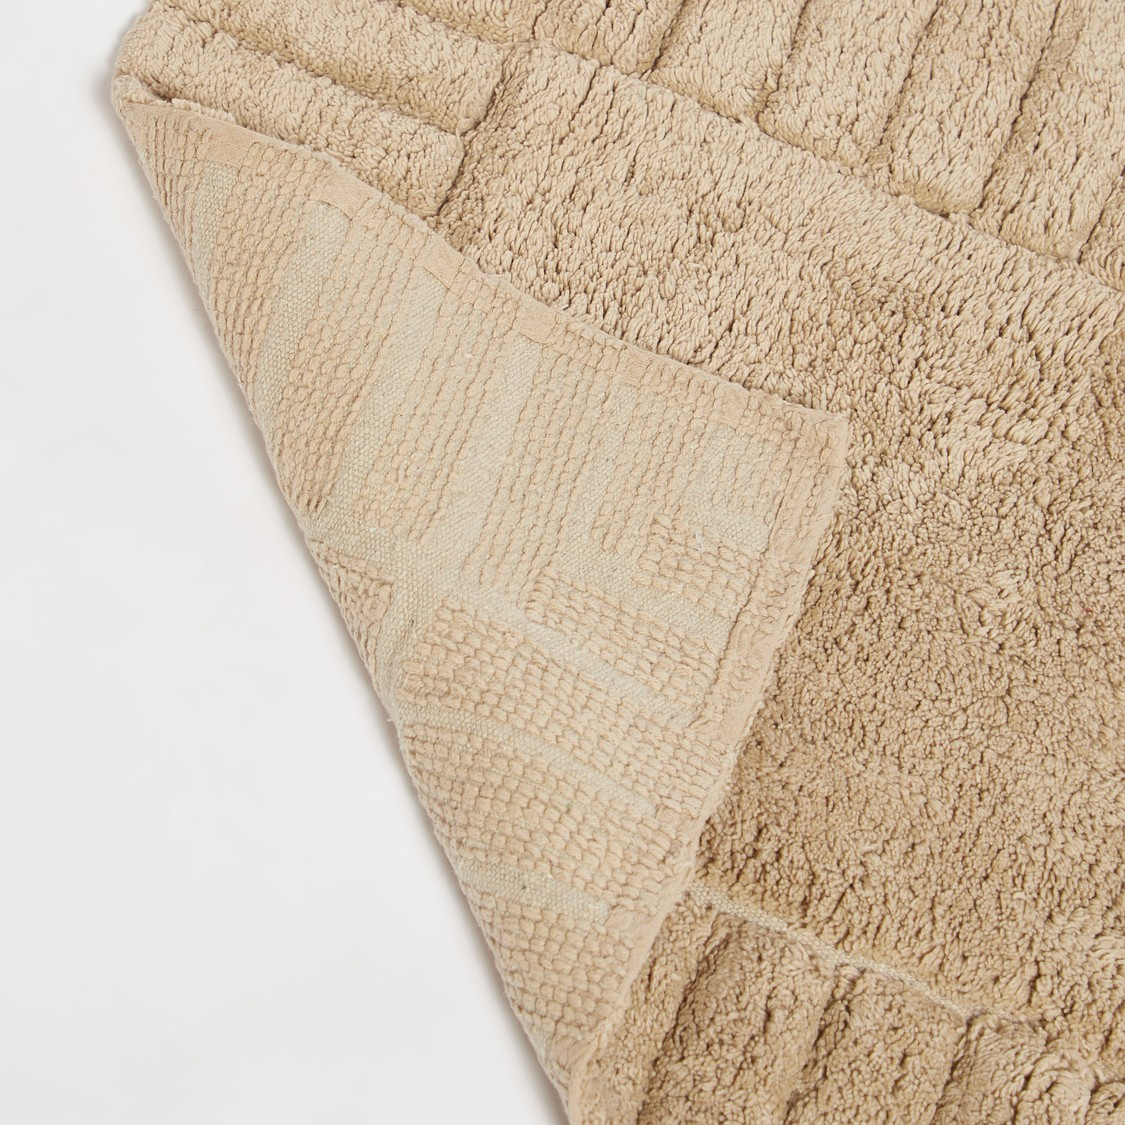 Textured Rectangular Bath Mat - 80x50 cms